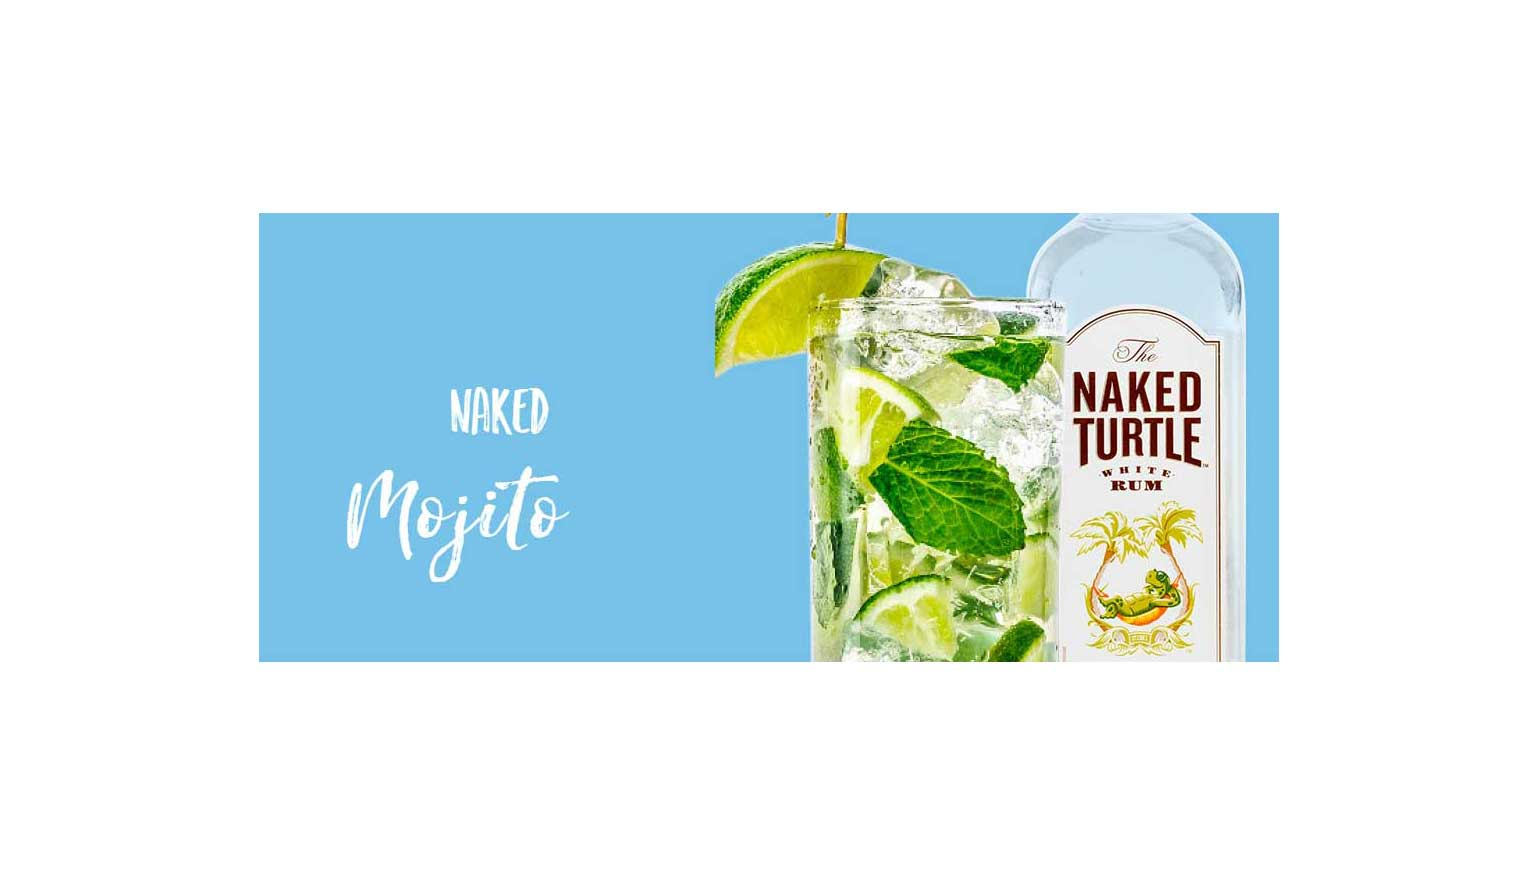 With the finest ingredients, we put the Oh in Mo-ji-toh. Photo Credit: The Naked Turtle White Rum